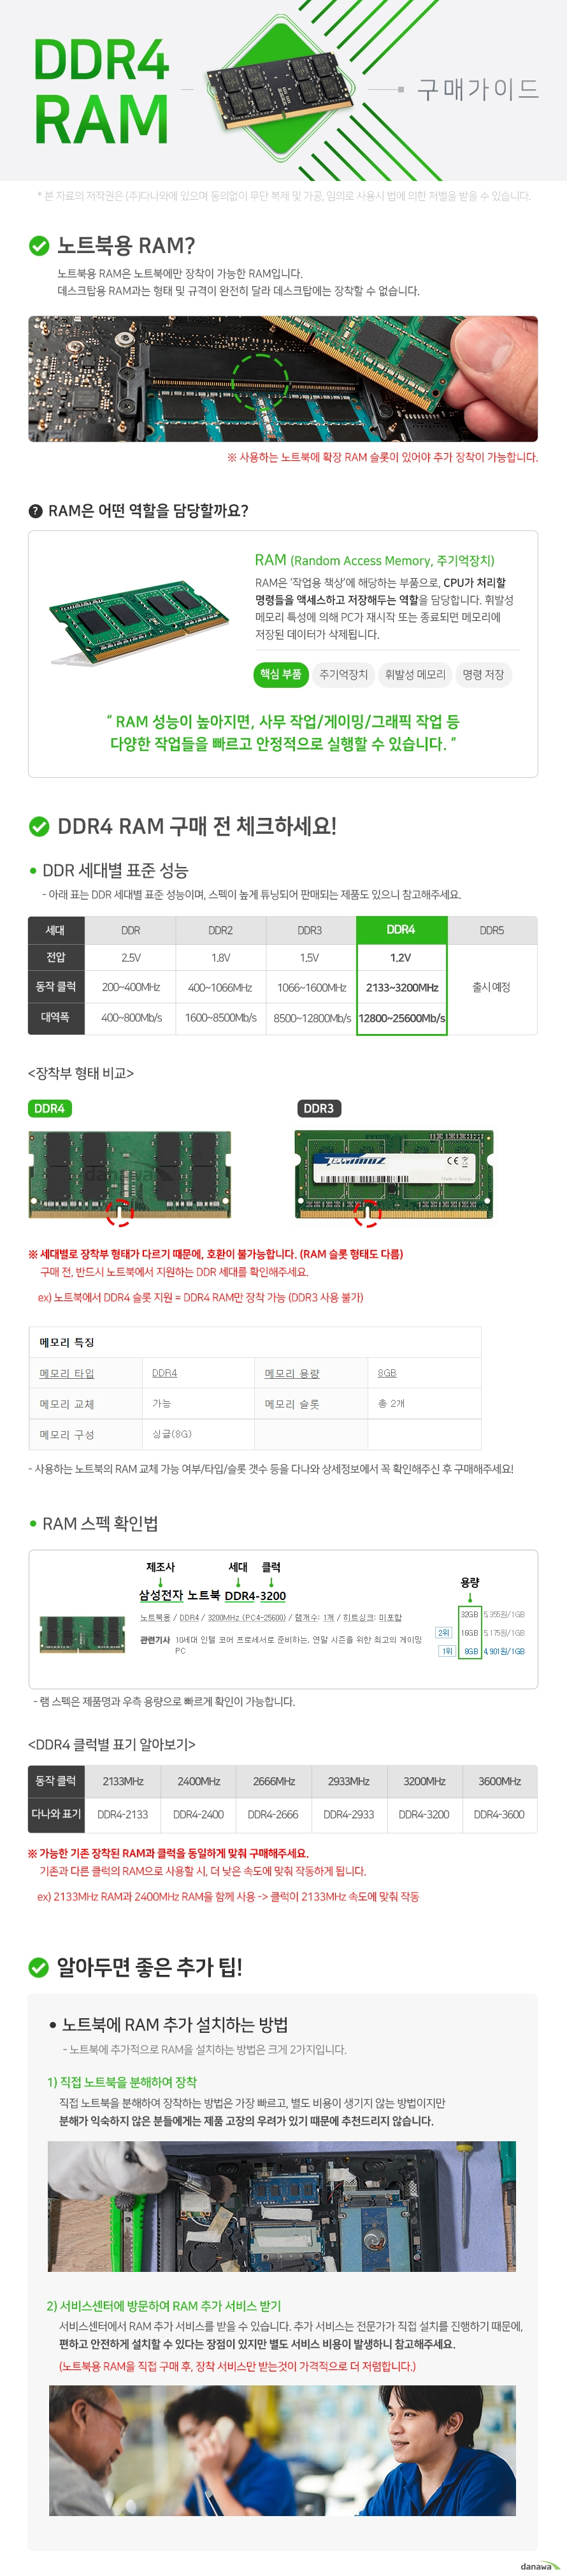 TeamGroup 노트북 DDR4-3200 CL22 ZEUS (8GB)